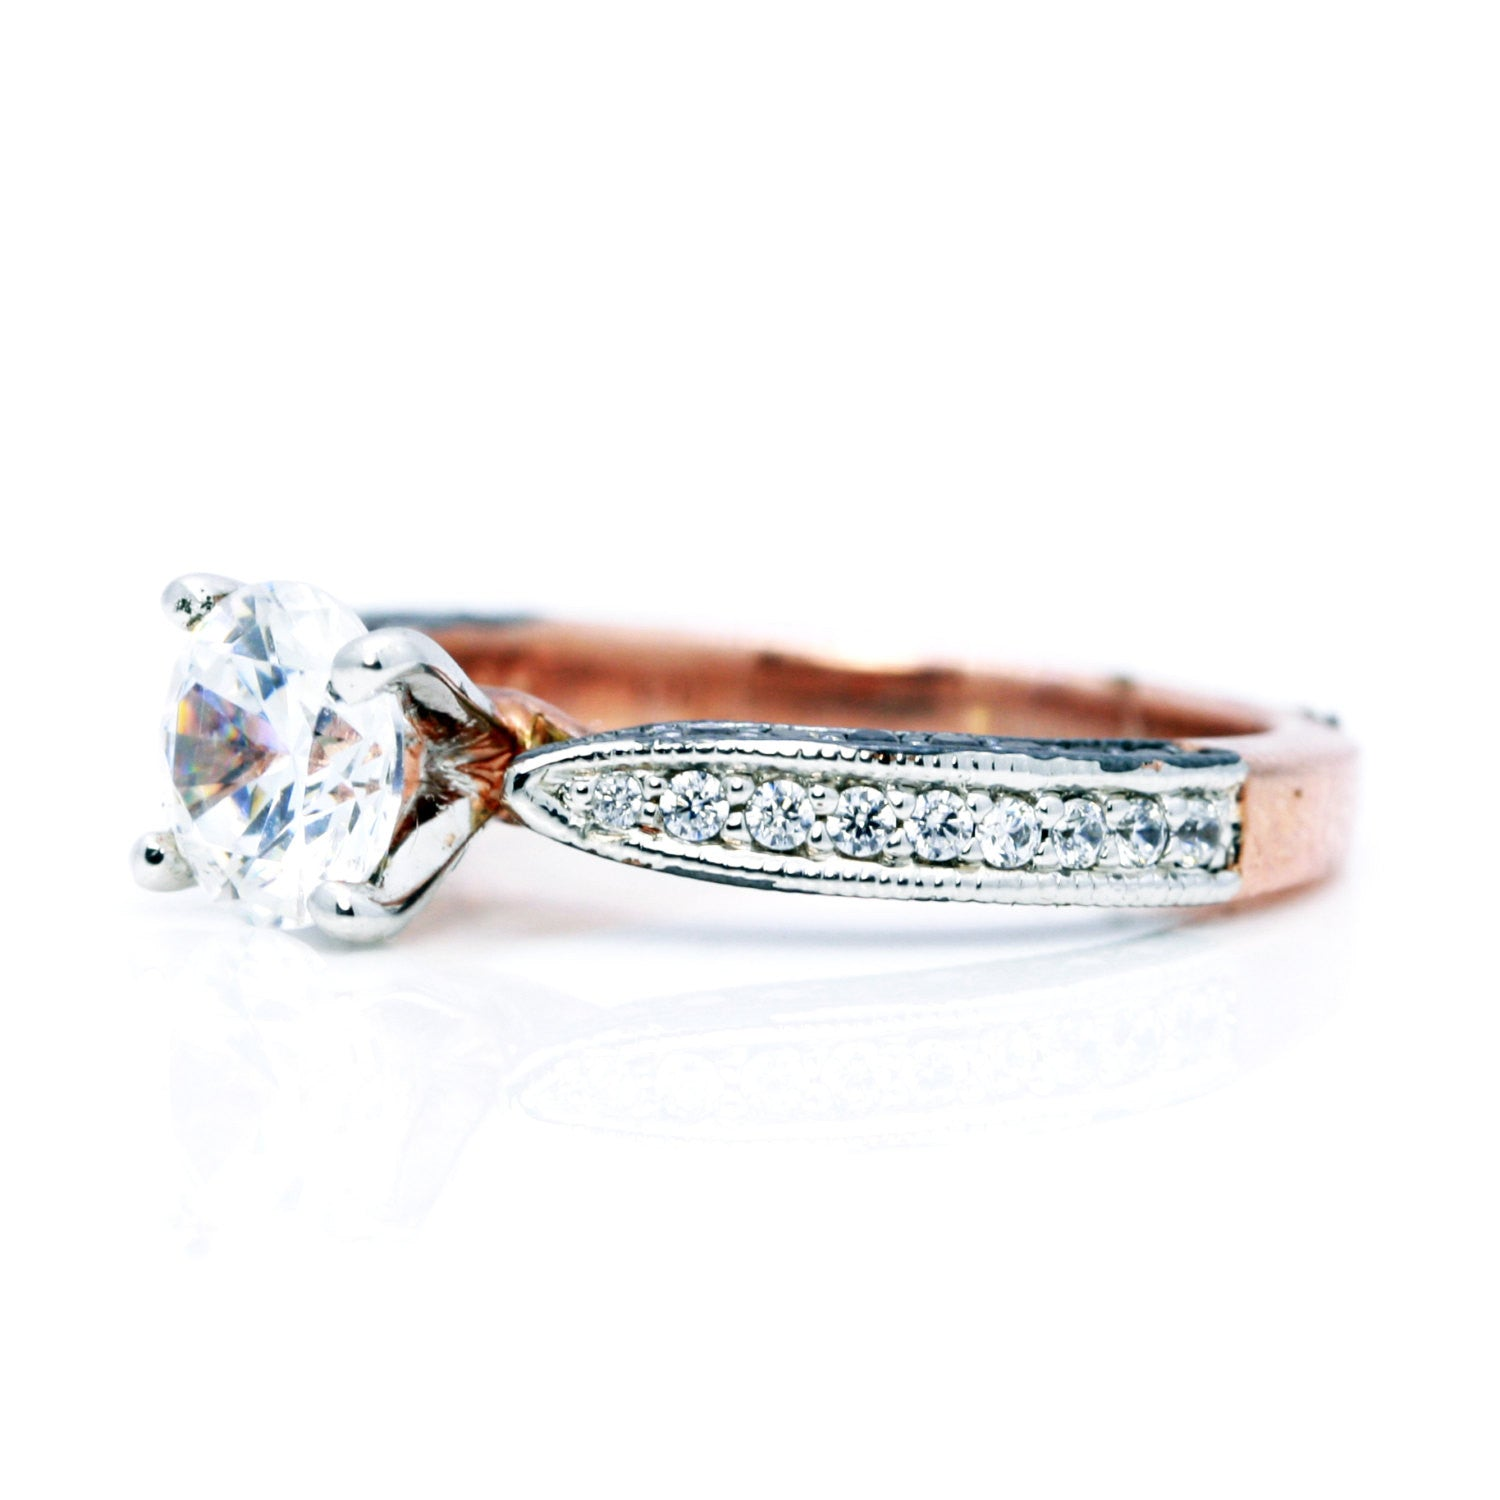 Rose Gold, White & Brown Diamonds, 1 Forever Brilliant Moissanite, Engagement Solitaire Anniversaryl Ring - FB94614